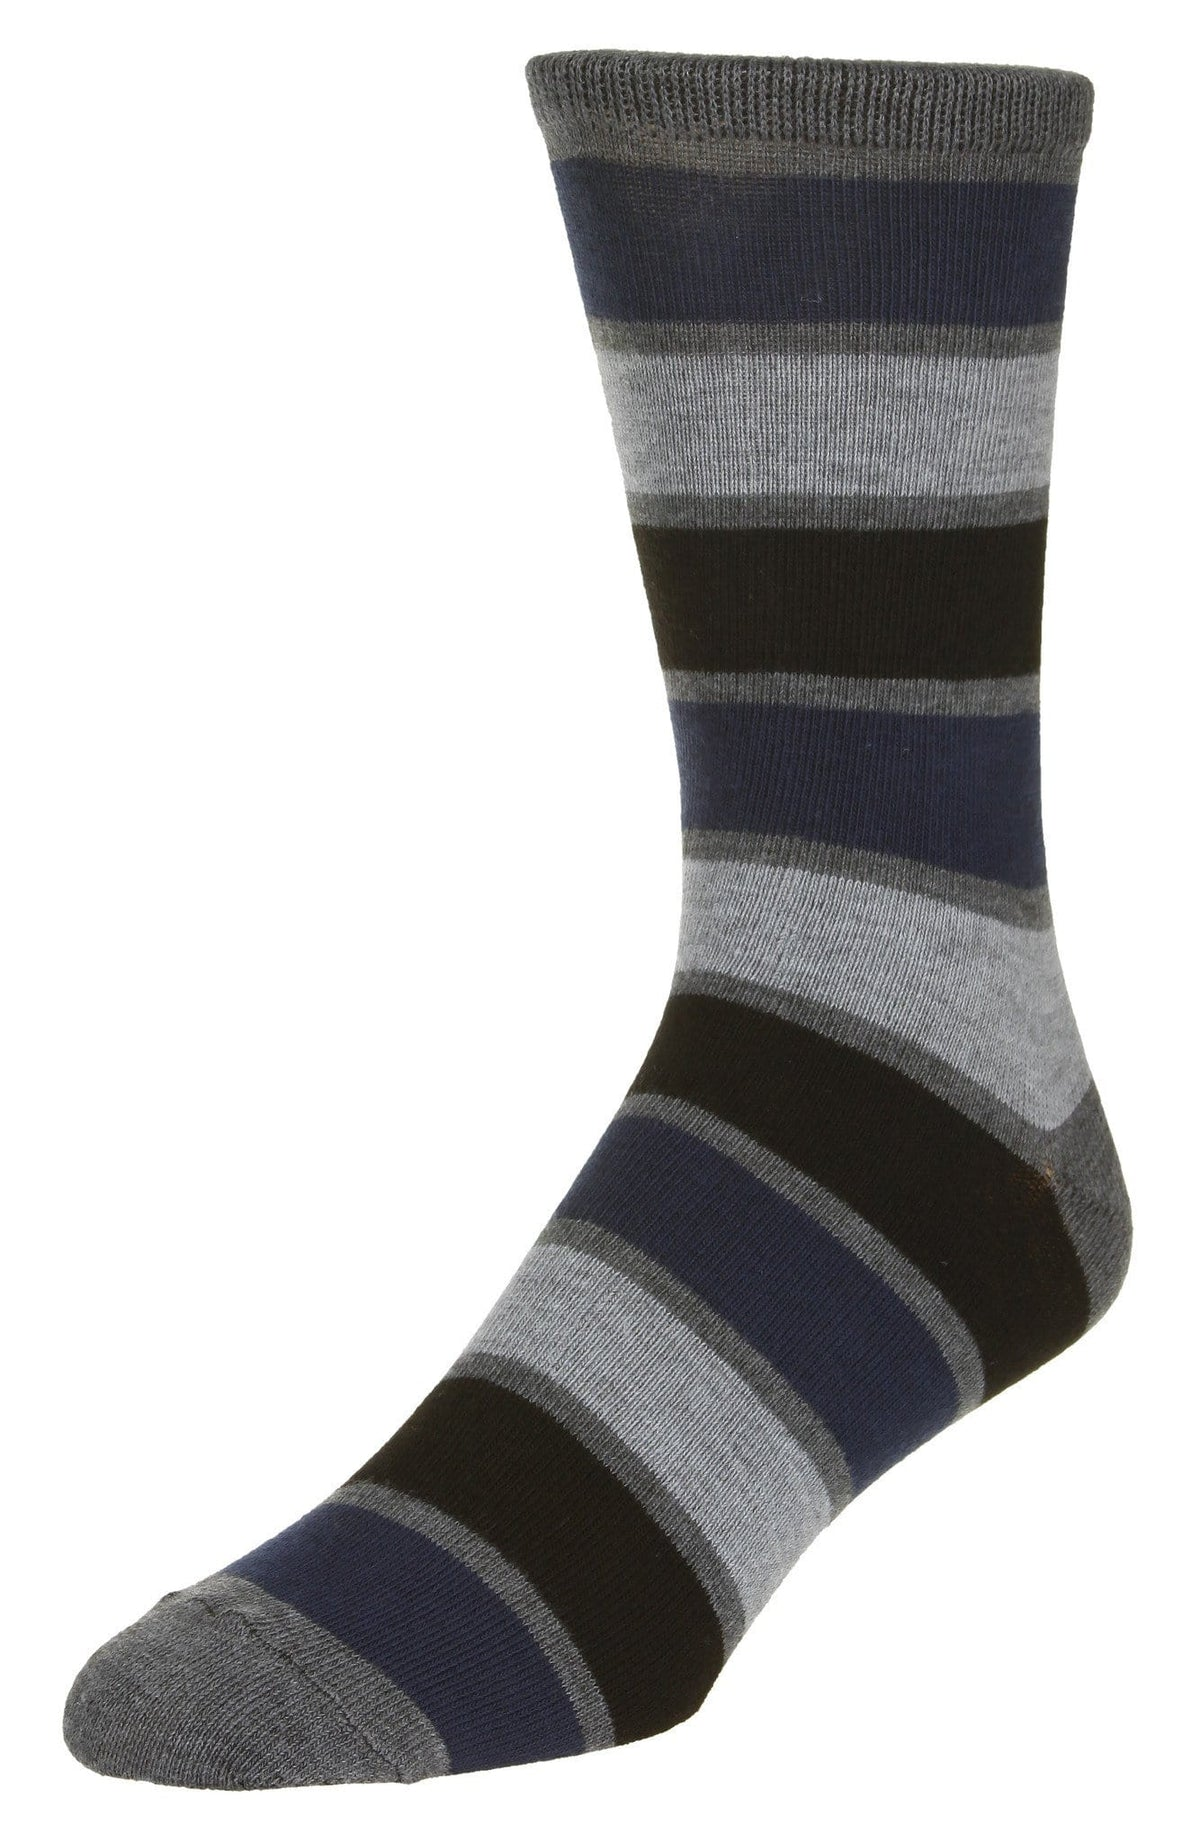 black-gray-grey-othergray Casual Stripe Pattern Socks